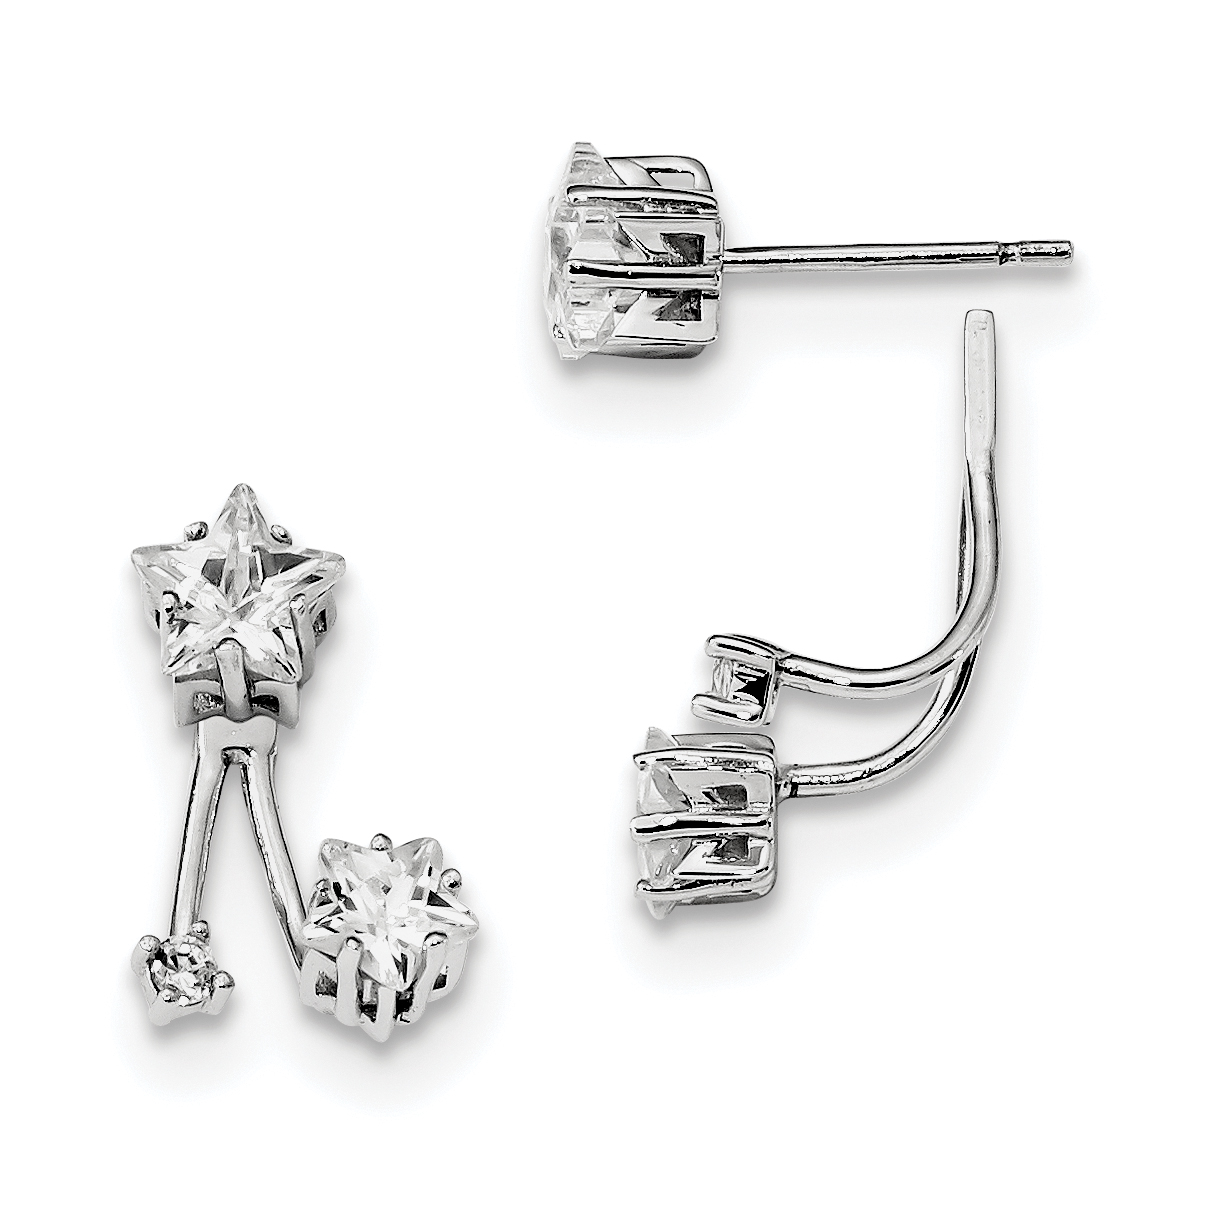 Sterling Silver Rhodium-plated CZ Star Front and Back Earrings QE13456 - image 1 of 1